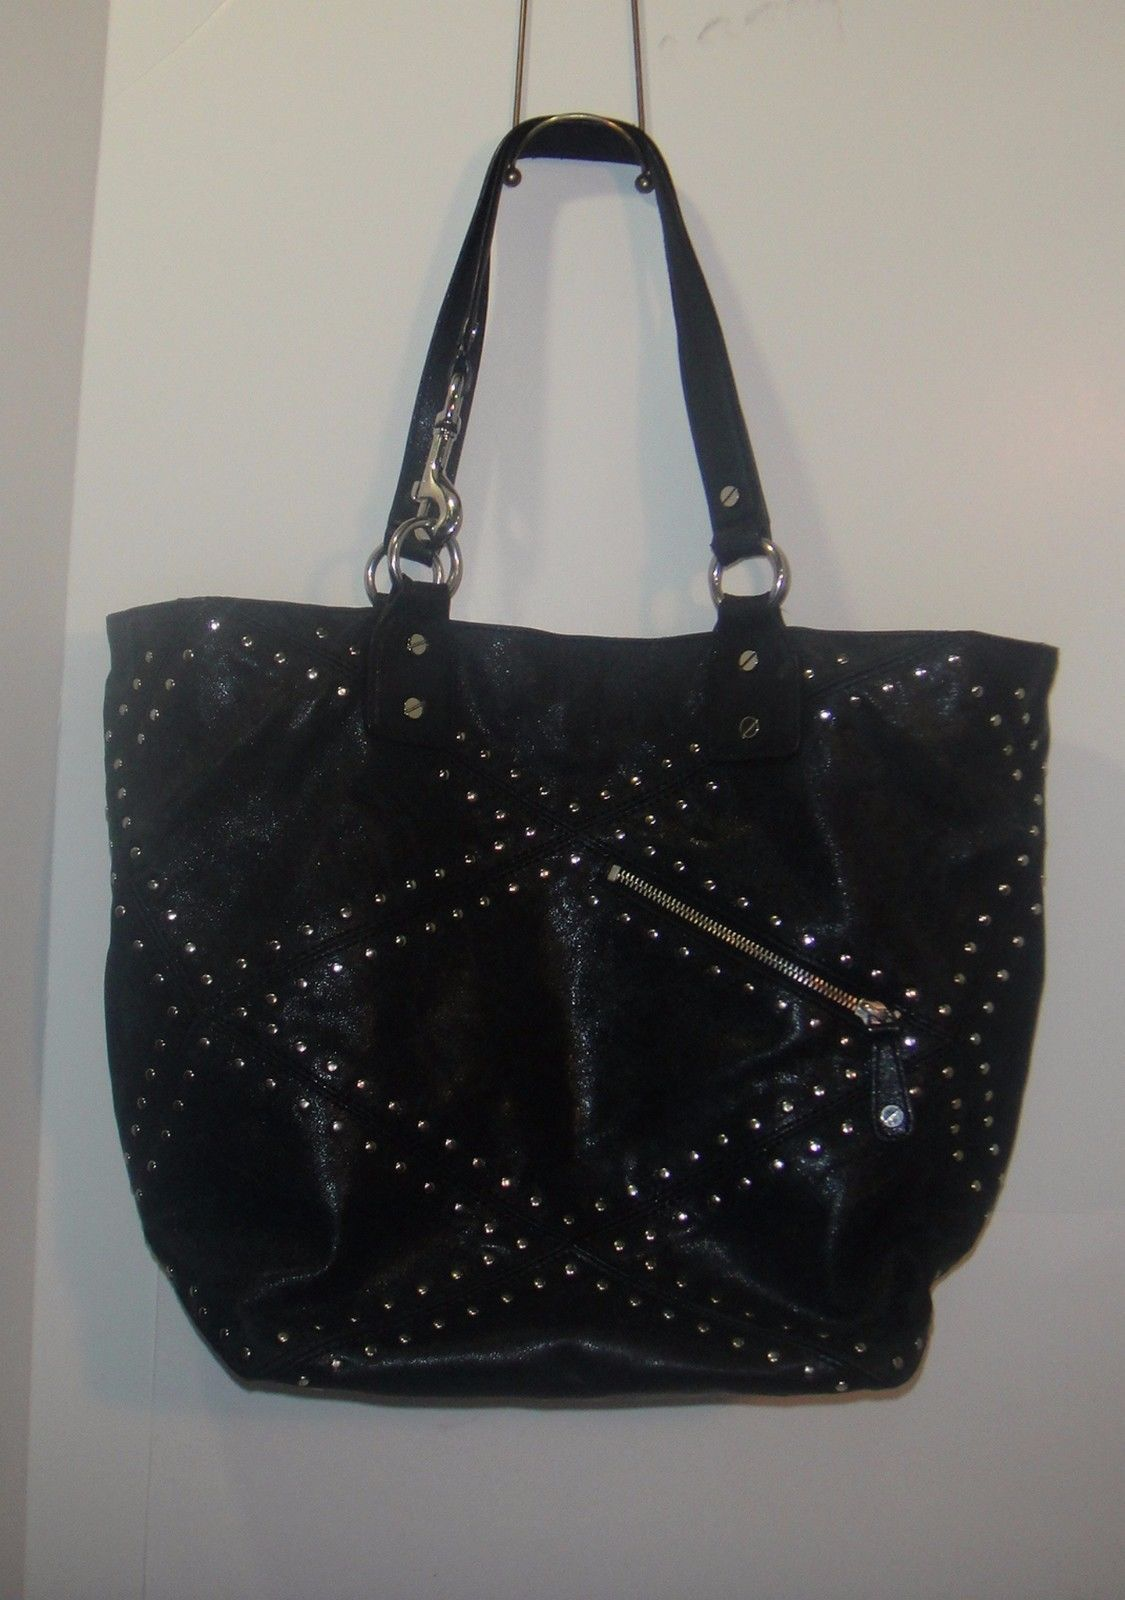 9bc249a8a32200 Michael Kors Black Purse With Silver Studs   Stanford Center for ...